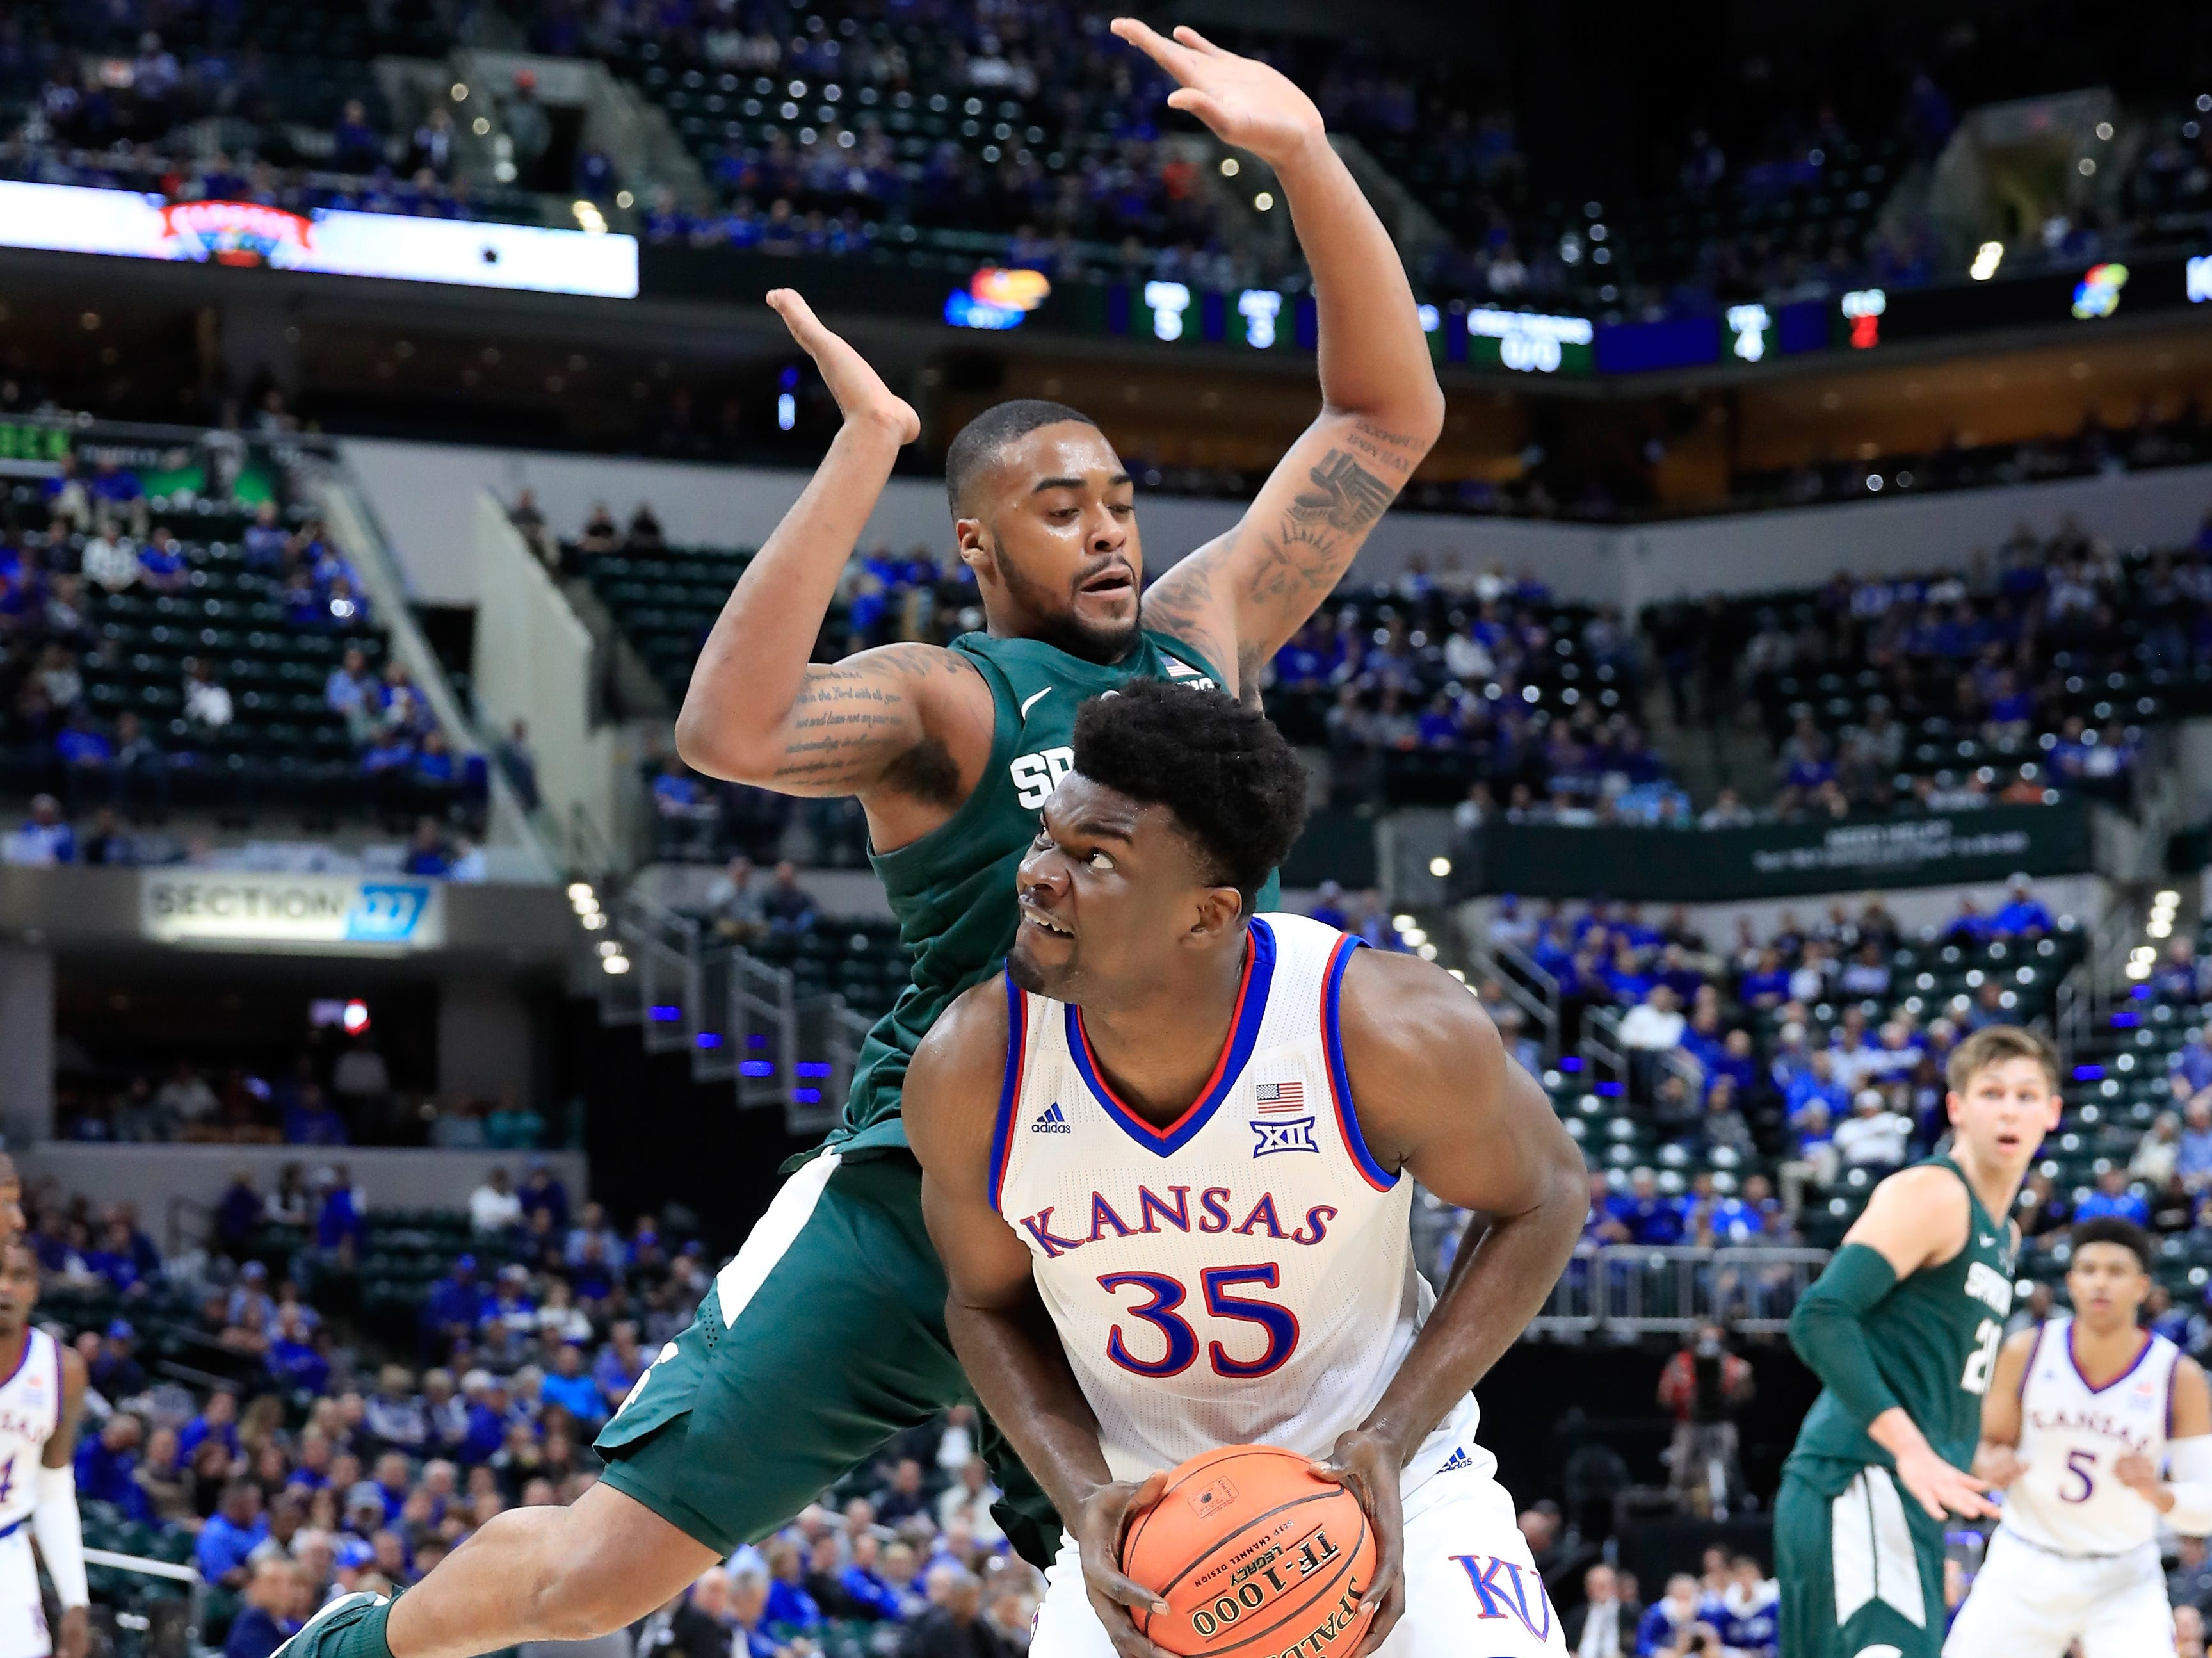 Udoka Azubuike (35) of the Kansas Jayhawks shoots the ball against the Michigan State Spartans during the State Farm Champions Classic at Bankers Life Fieldhouse on November 6, 2018.